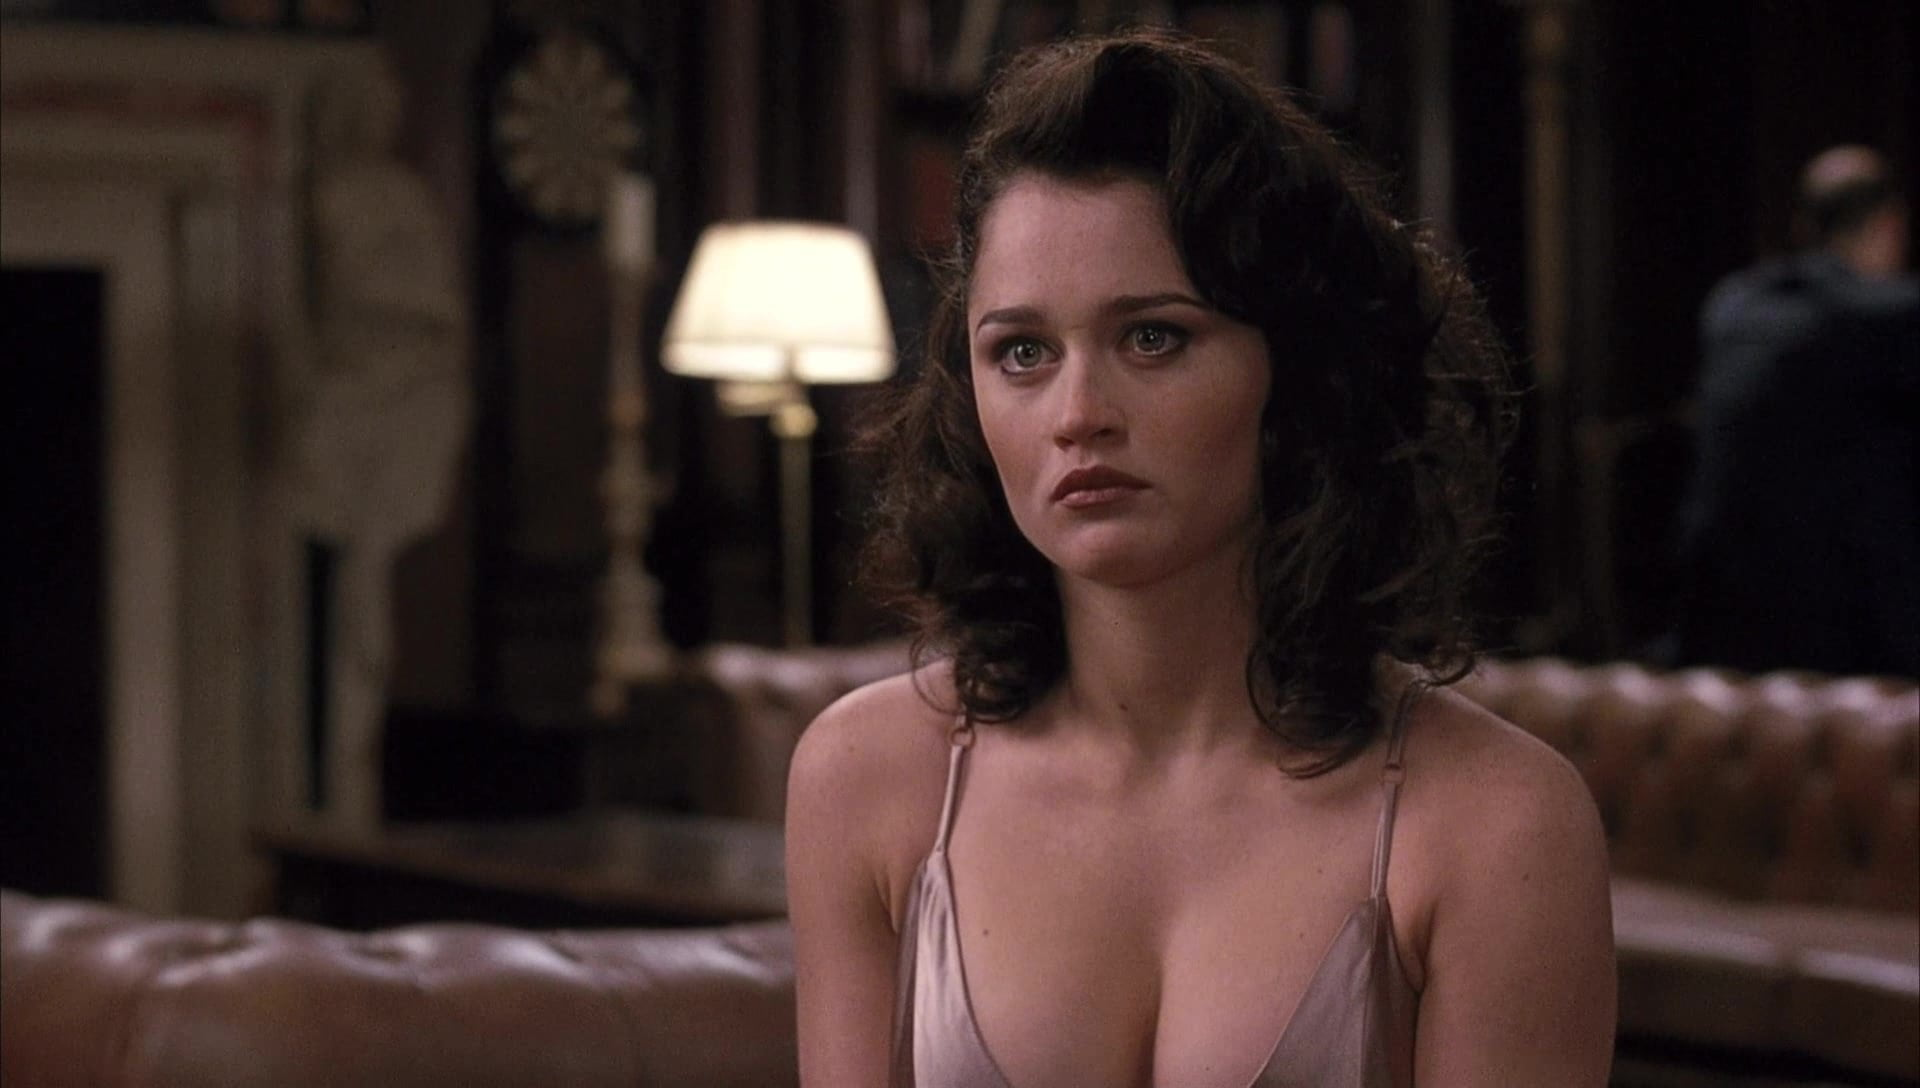 Robin tunney nude pic